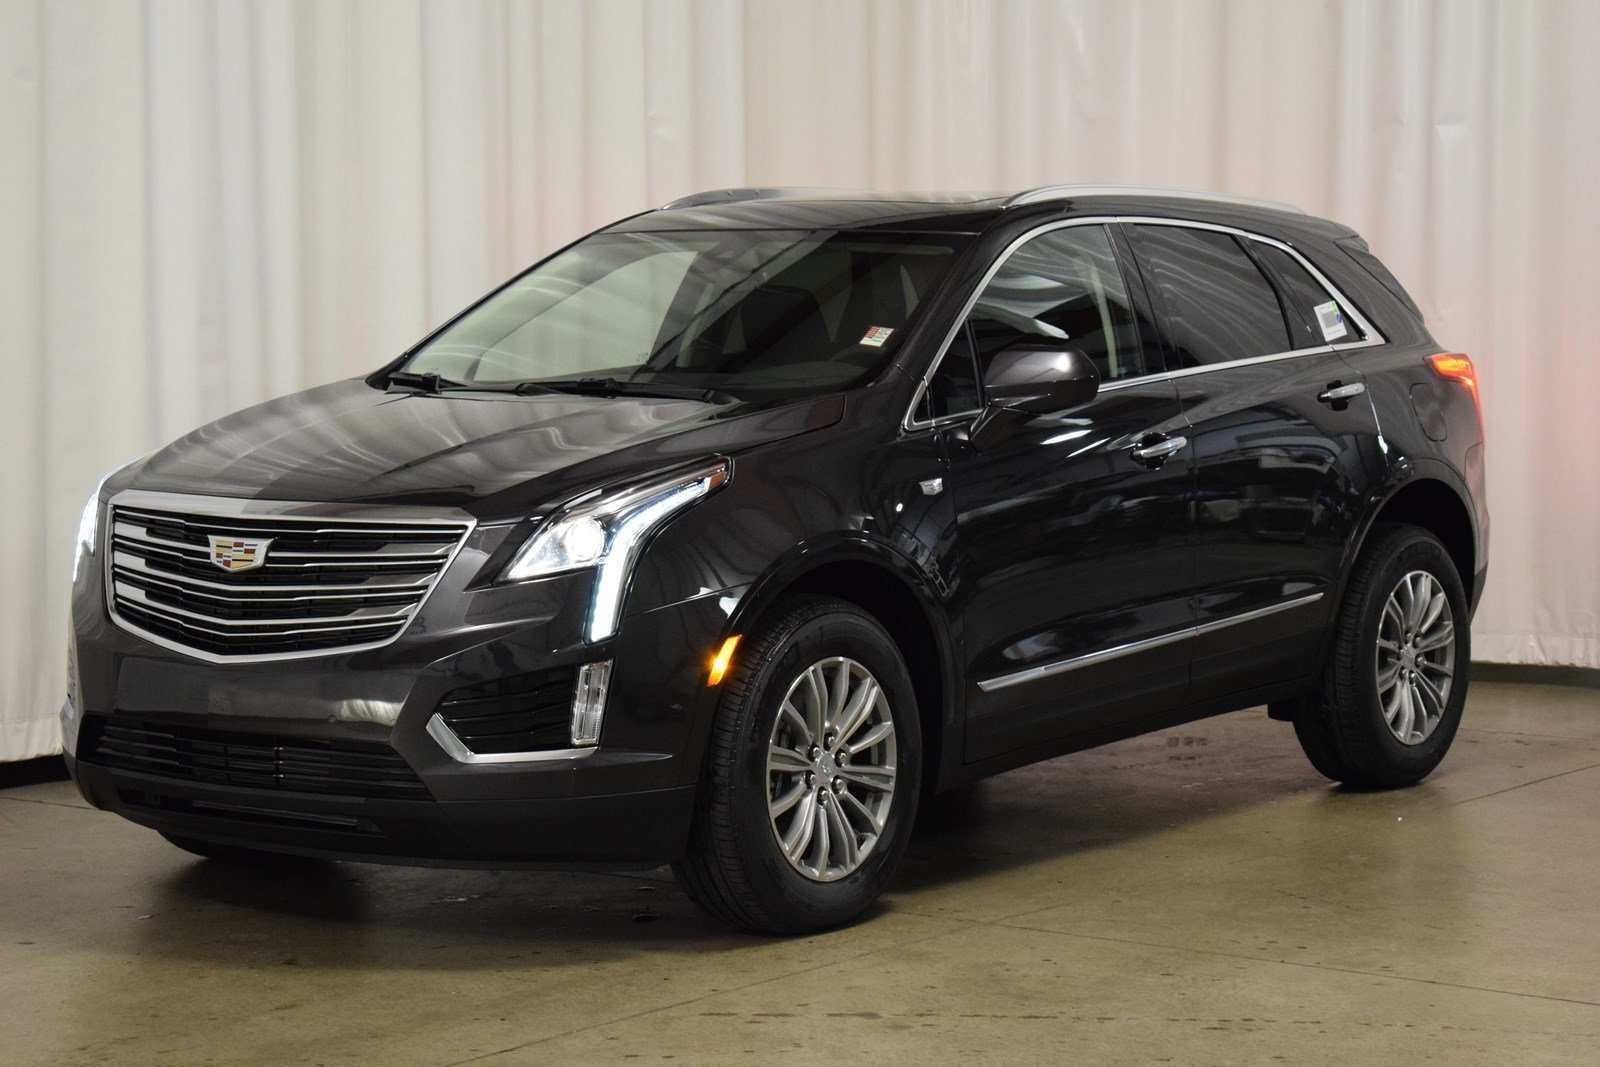 79 All New 2019 Cadillac XT5 Exterior